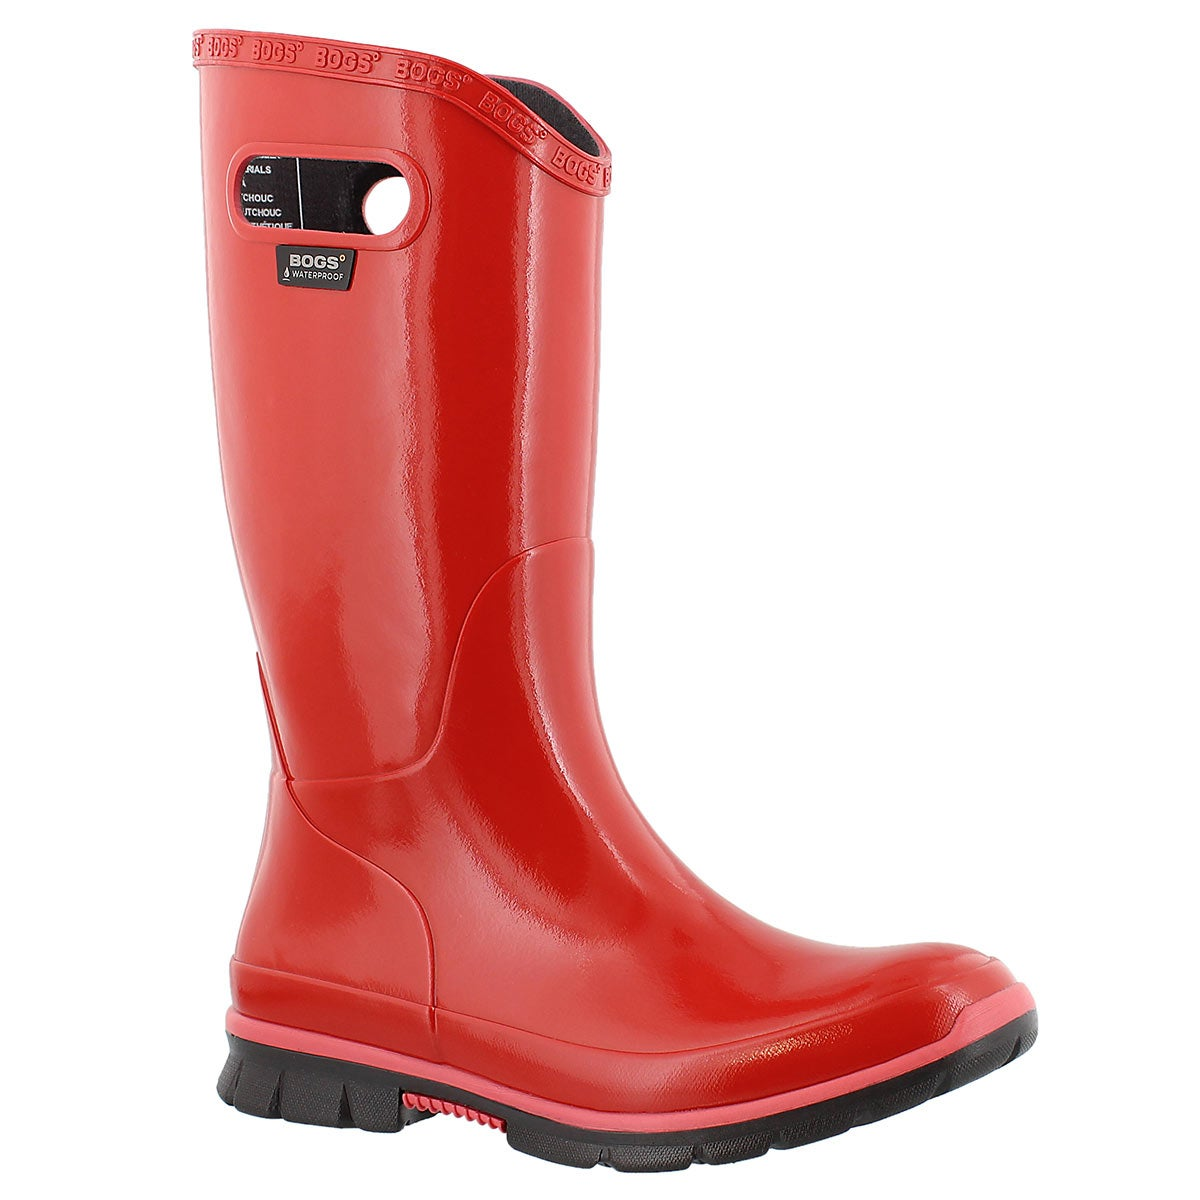 Lds Berkley red tall rain boot